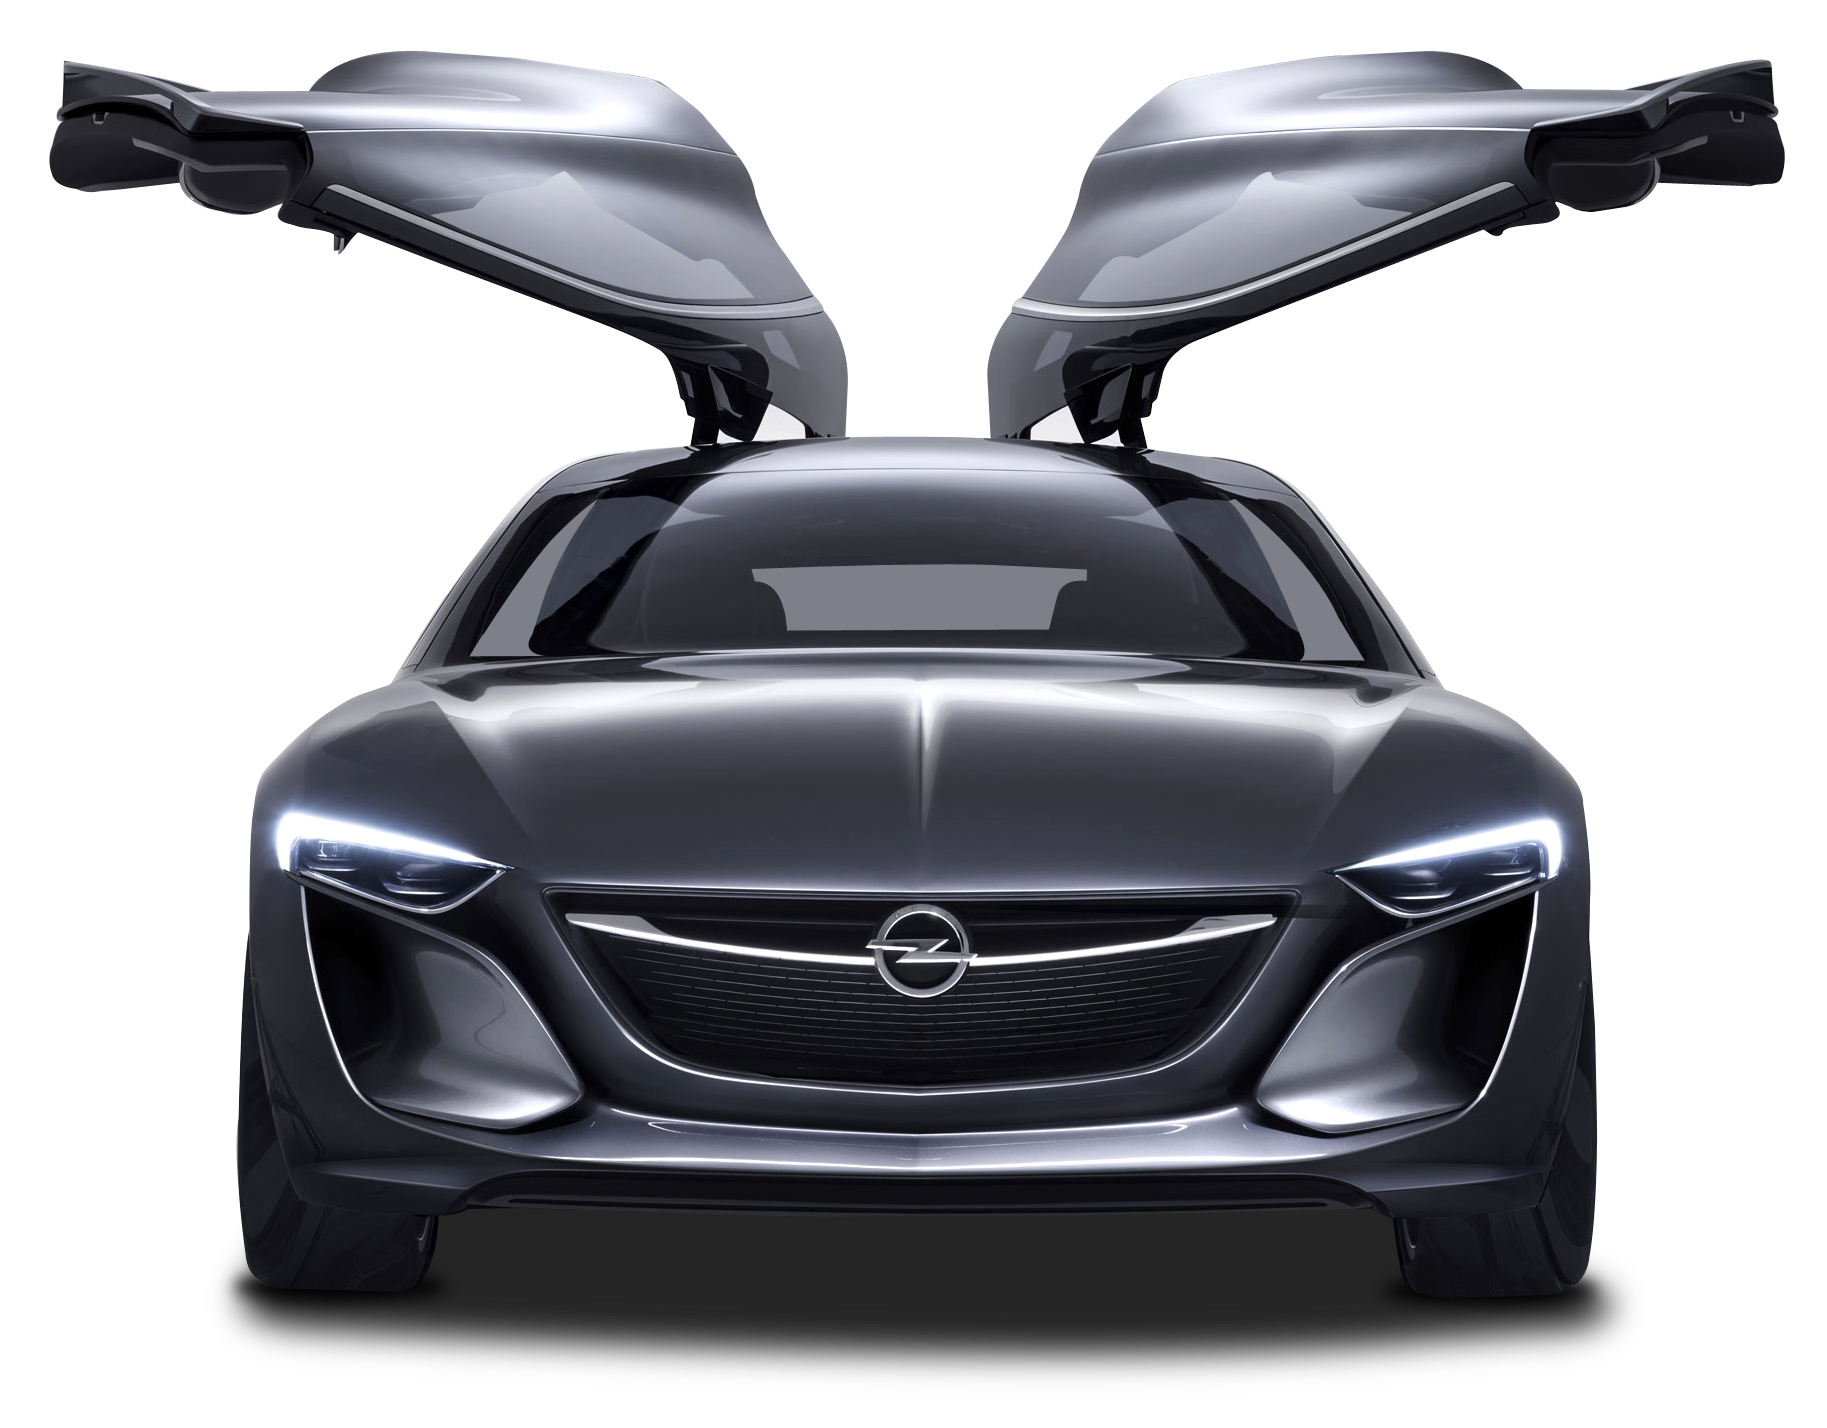 Opel PNG Image